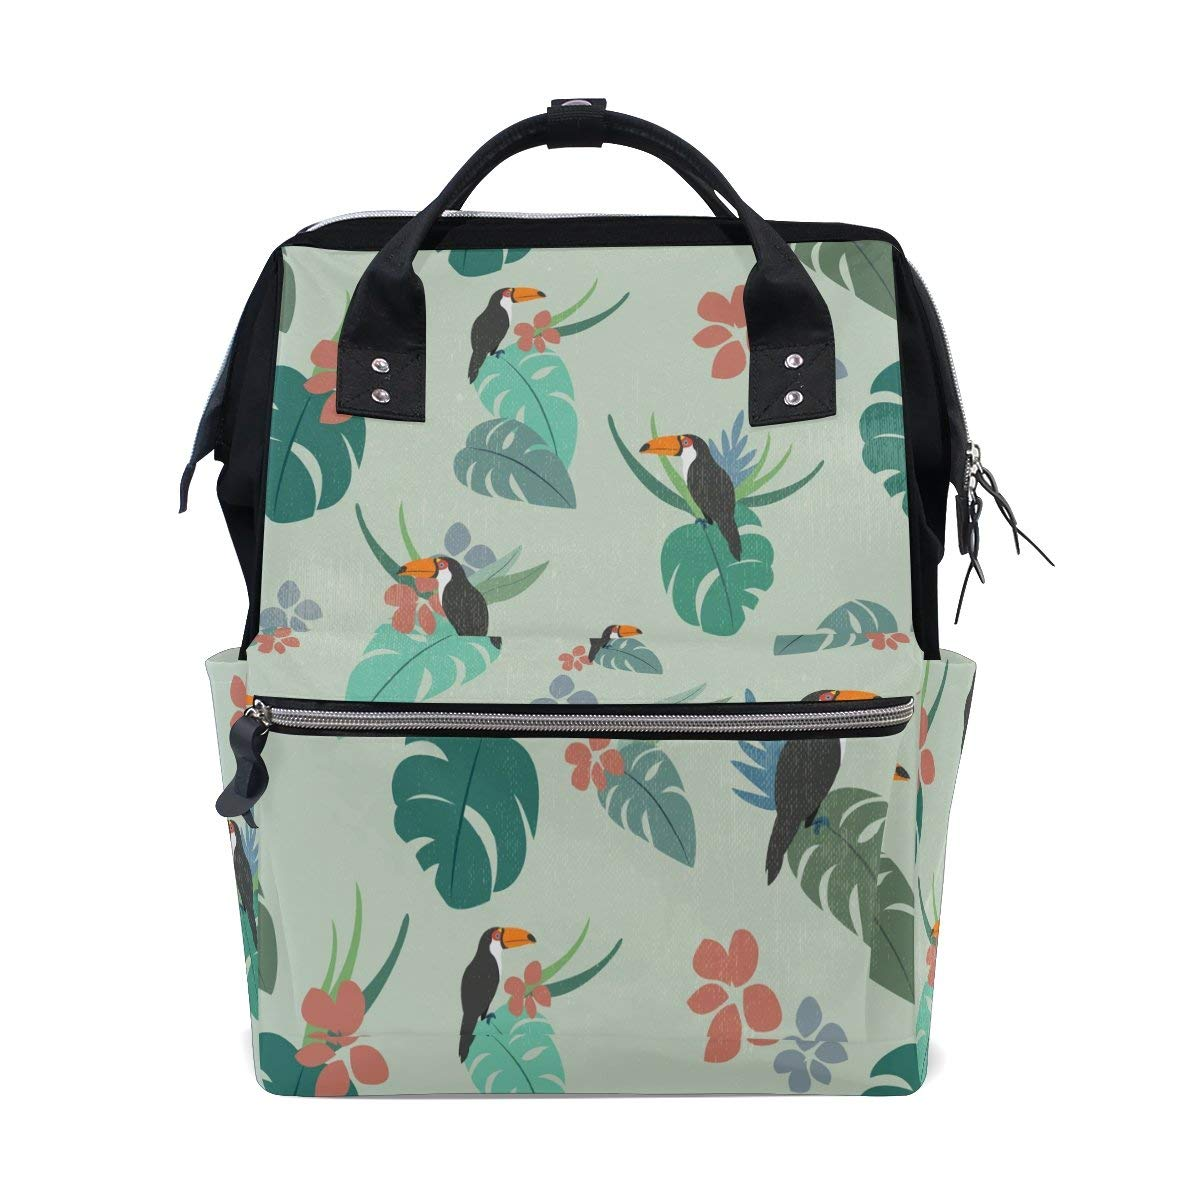 Diaper Bags Backpack Purse Mummy Backpack Fashion Mummy Maternity Nappy Bag Cool Cute Travel Backpack Laptop Backpack with Camouflage Print Daypack for Women Girls Kids